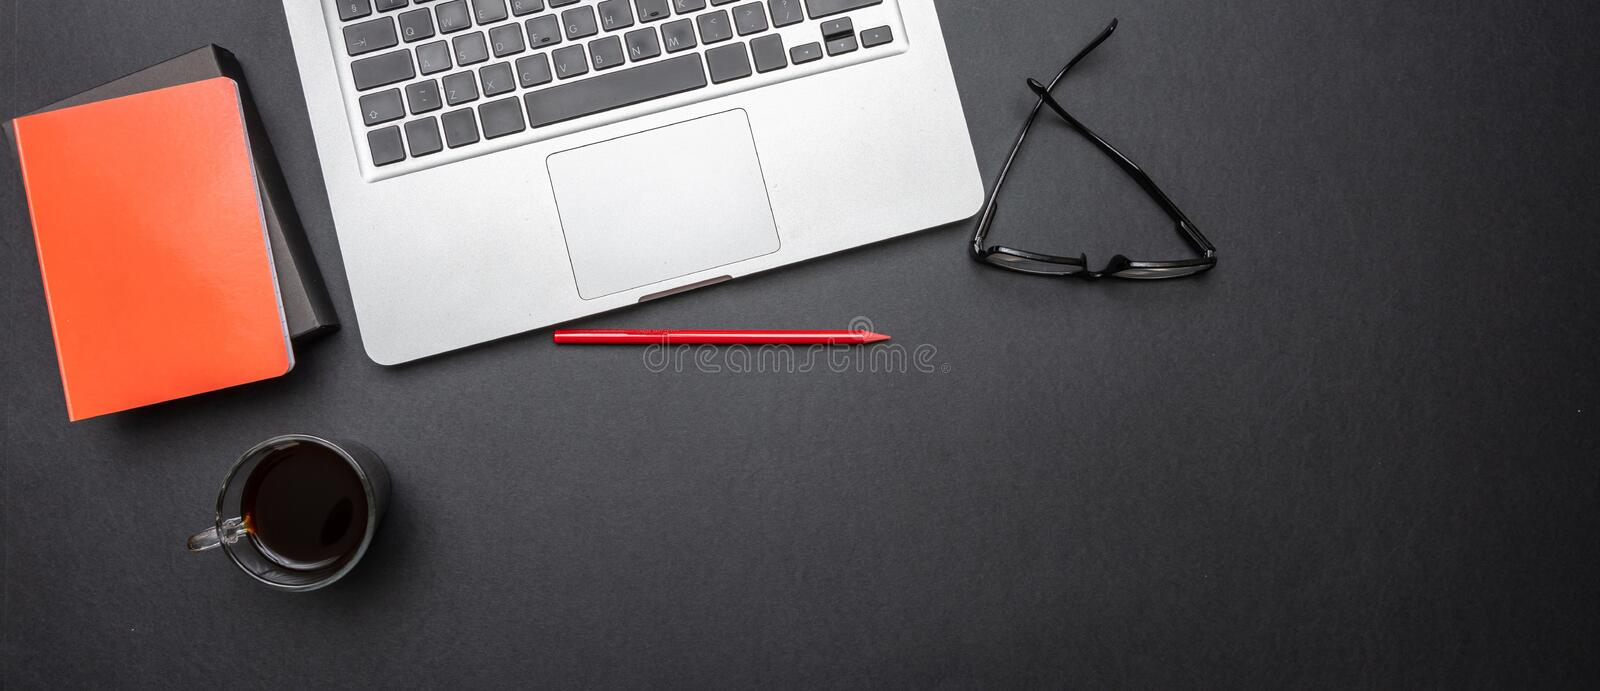 Computer laptop and mobile phone on black color office desk, banner royalty free stock photography